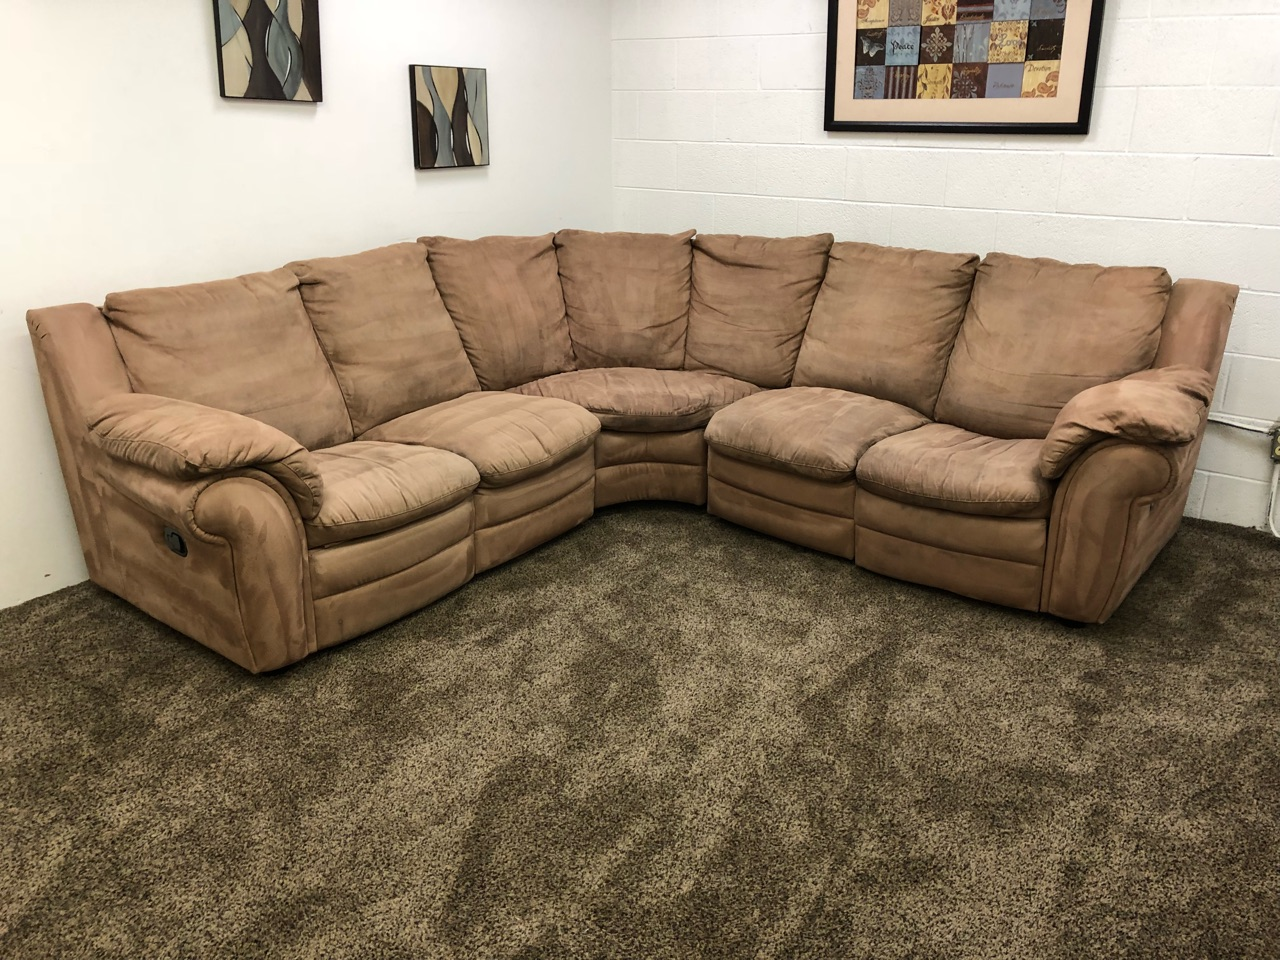 Microfiber Sectional Sofa Reserved 1087 Light Brown Microfiber Sectional Sofa Set With Dual Recliners